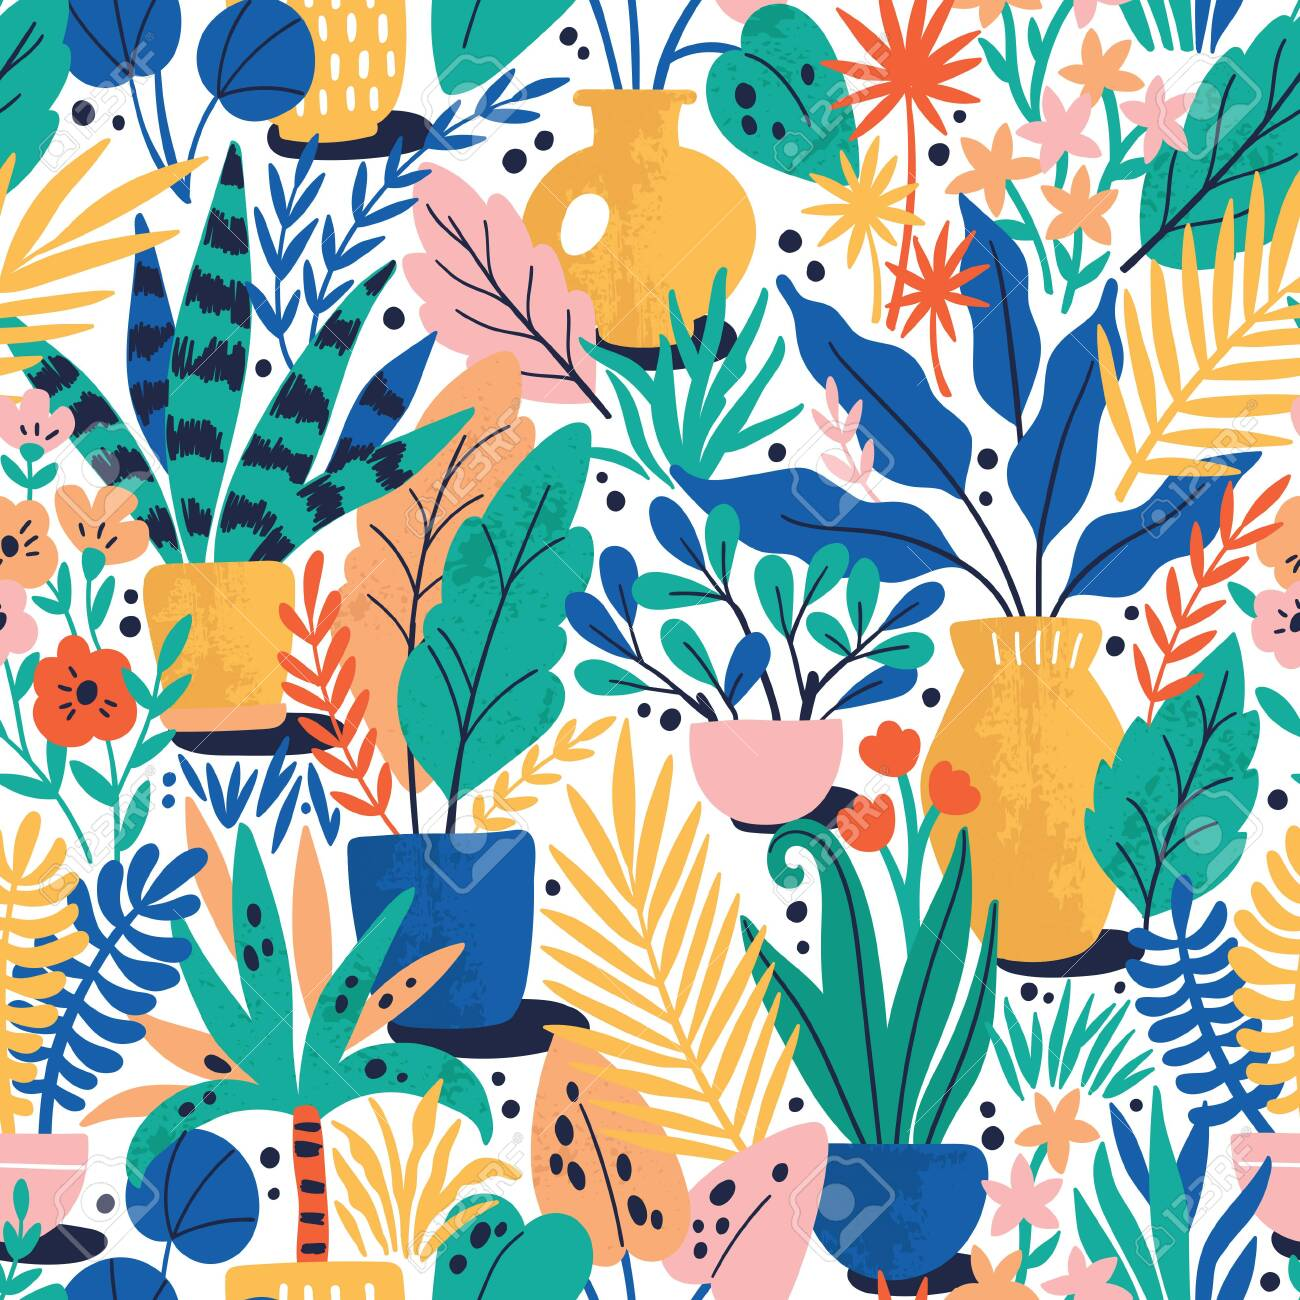 Home plants in ceramic pots vector seamless pattern. Domestic flowers colorful texture. Exotic houseplants in flowerpots illustration - 144102757